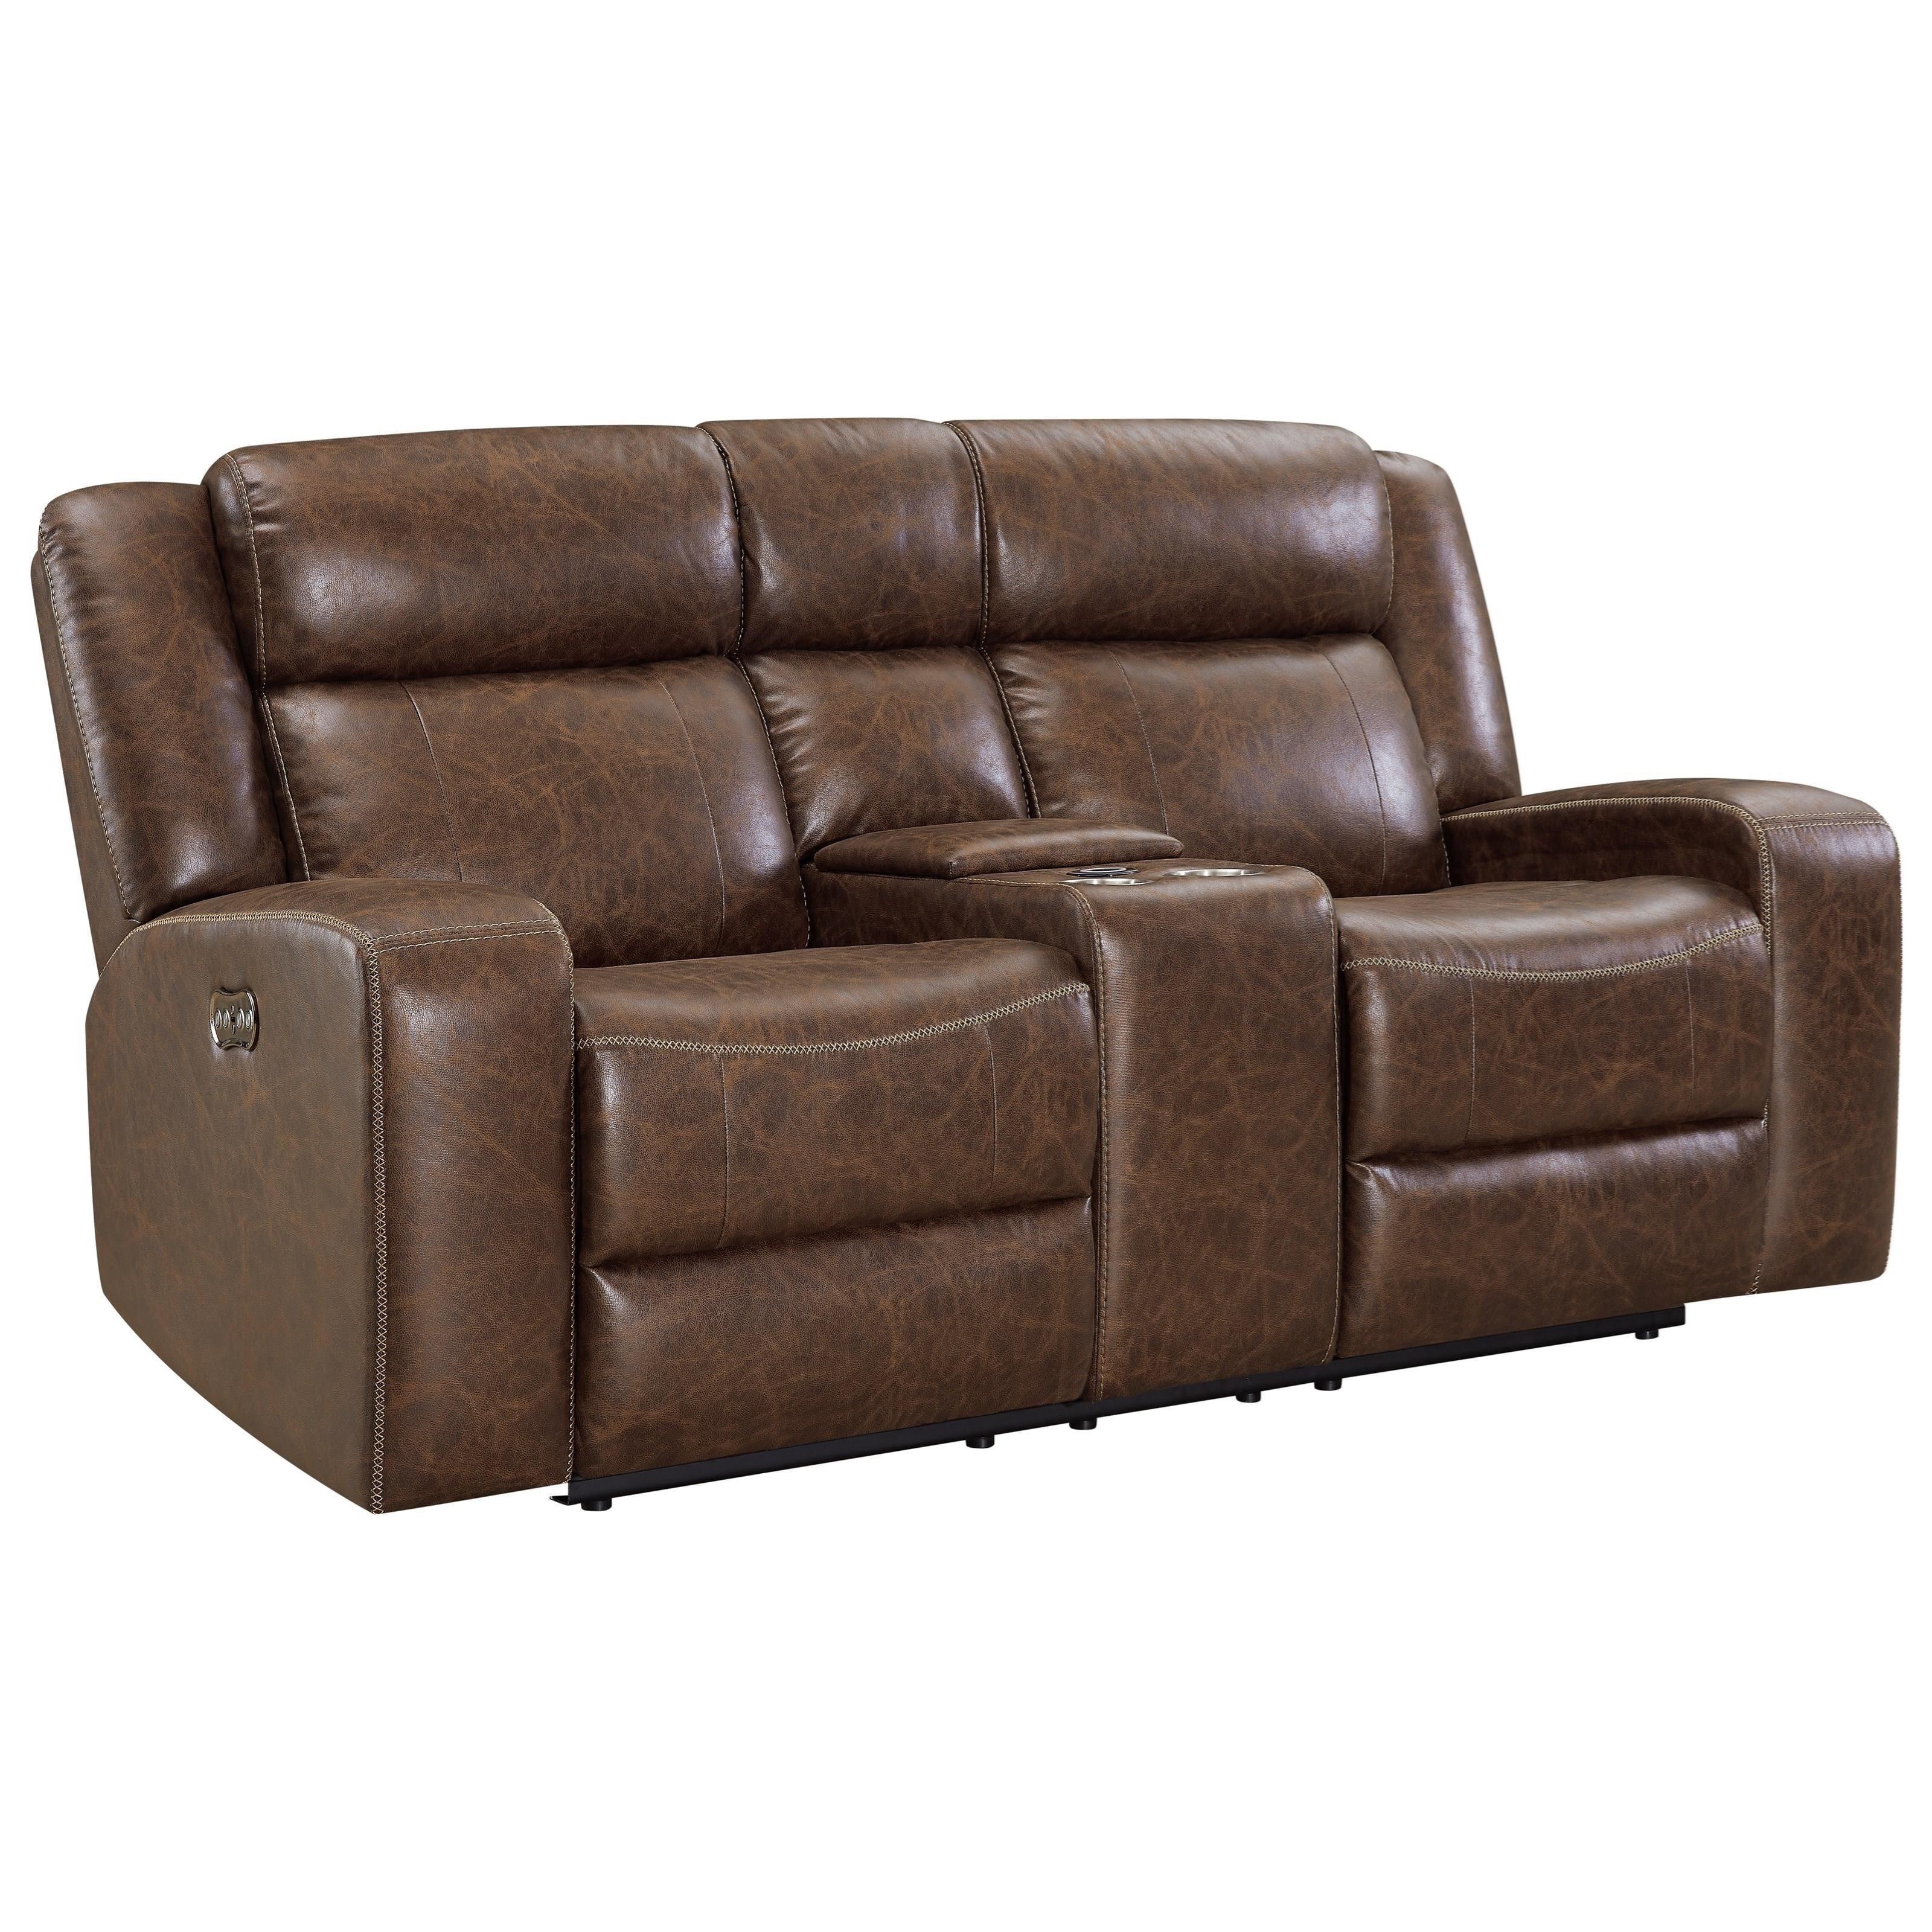 Atticus Power Reclining Console Loveseat by New Classic at Beds N Stuff